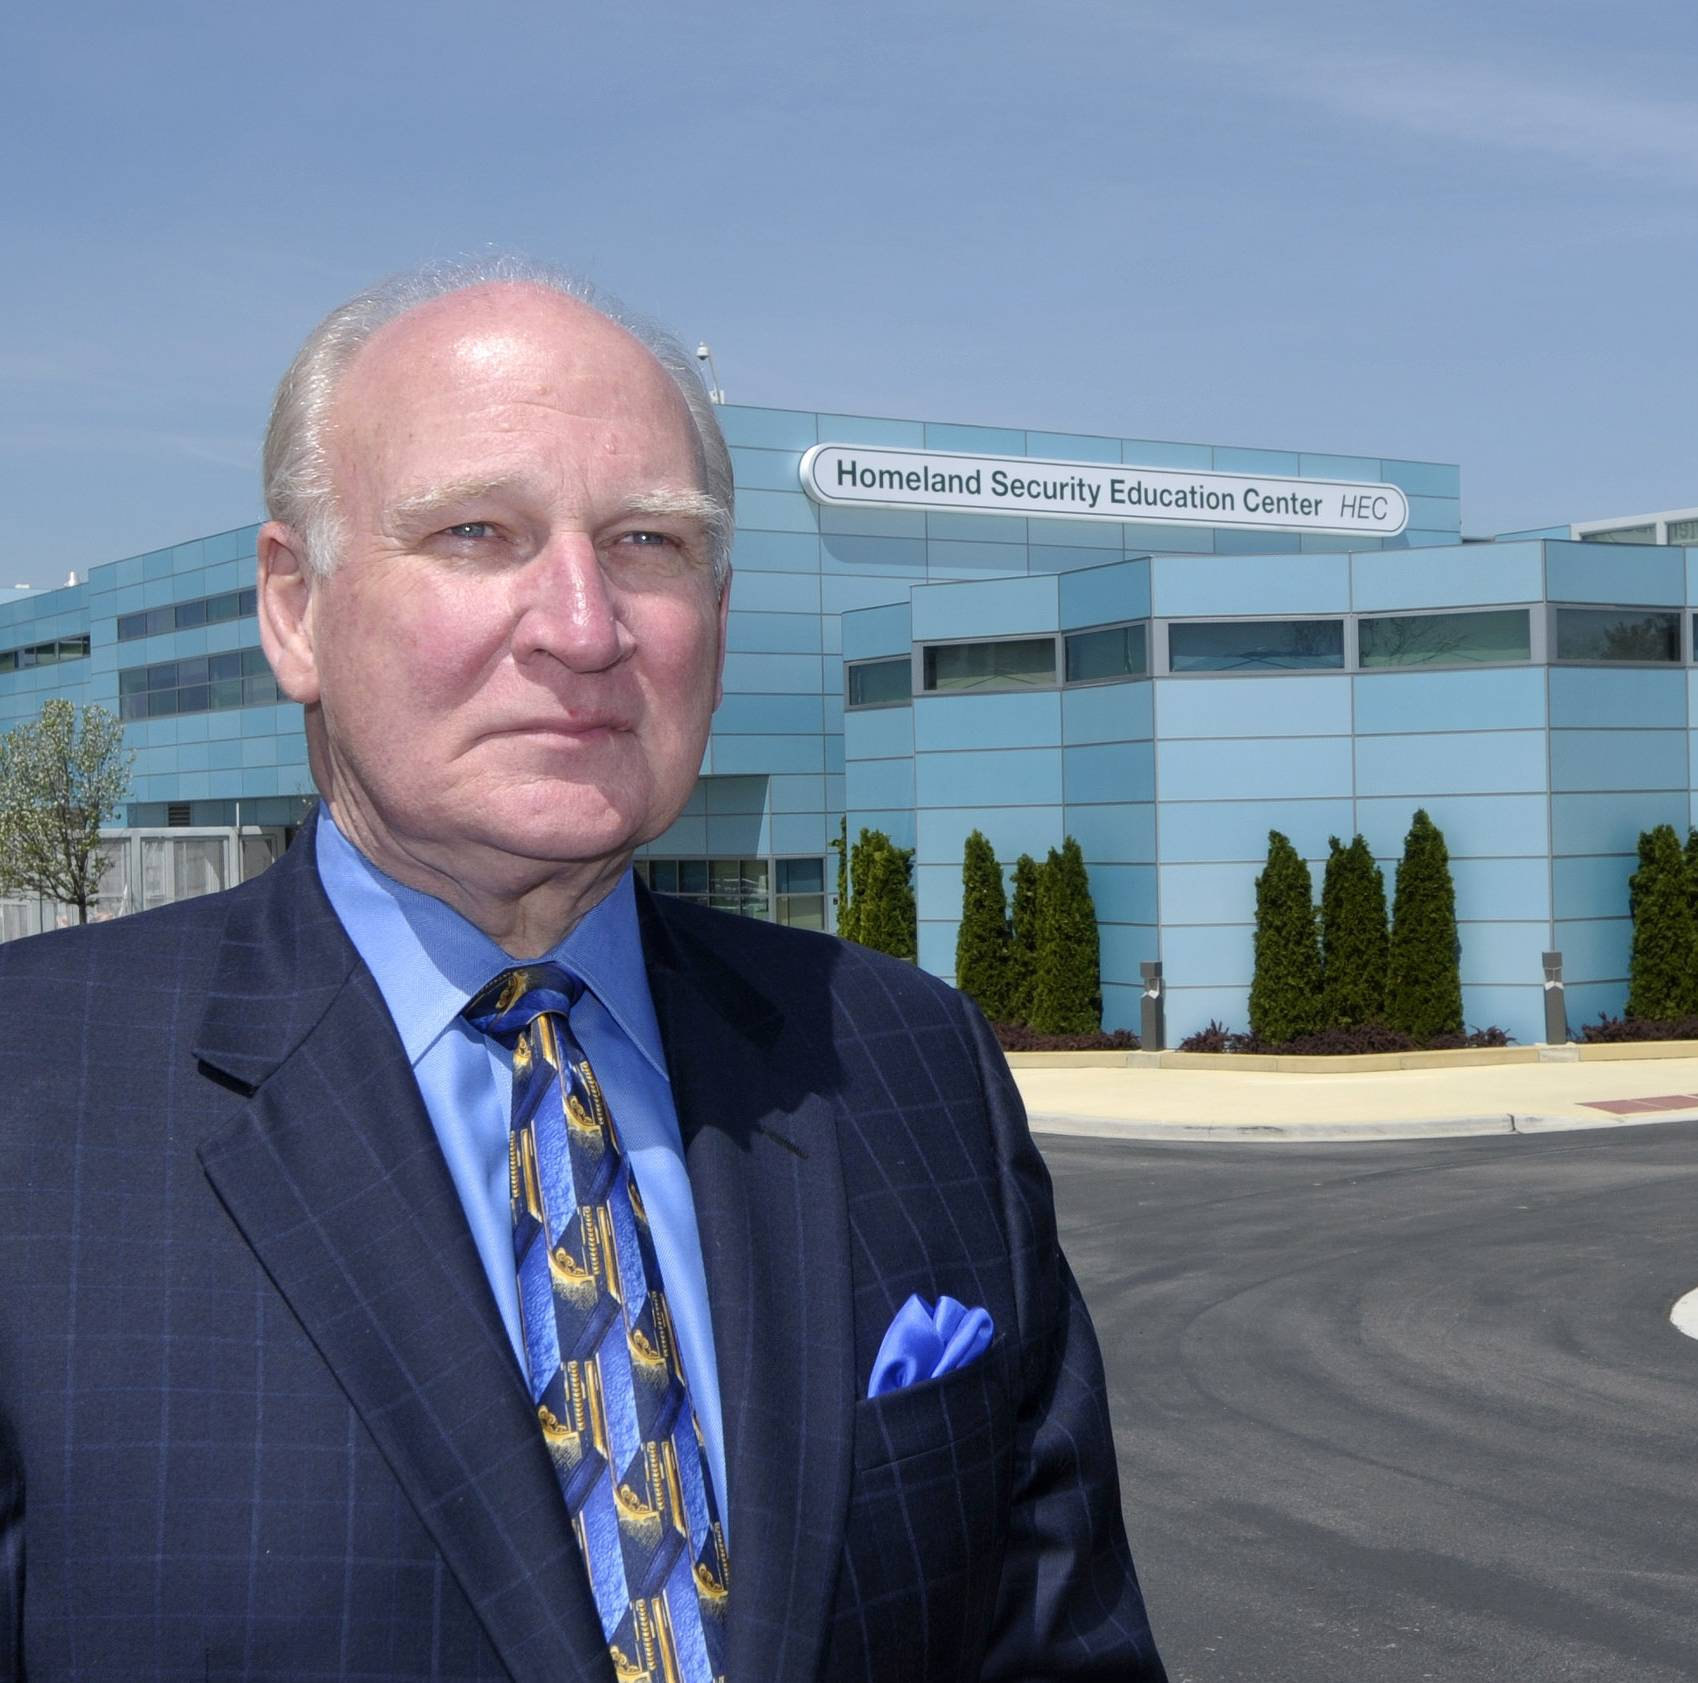 Most candidates in the race for College of DuPage trustee say they don't want the school's Homeland Security Education Center to be renamed in honor of school President Robert Breuder. The COD board voted in 2013 to name the building in Breuder's honor, and his recent retirement buyout package also makes reference to the naming promise.